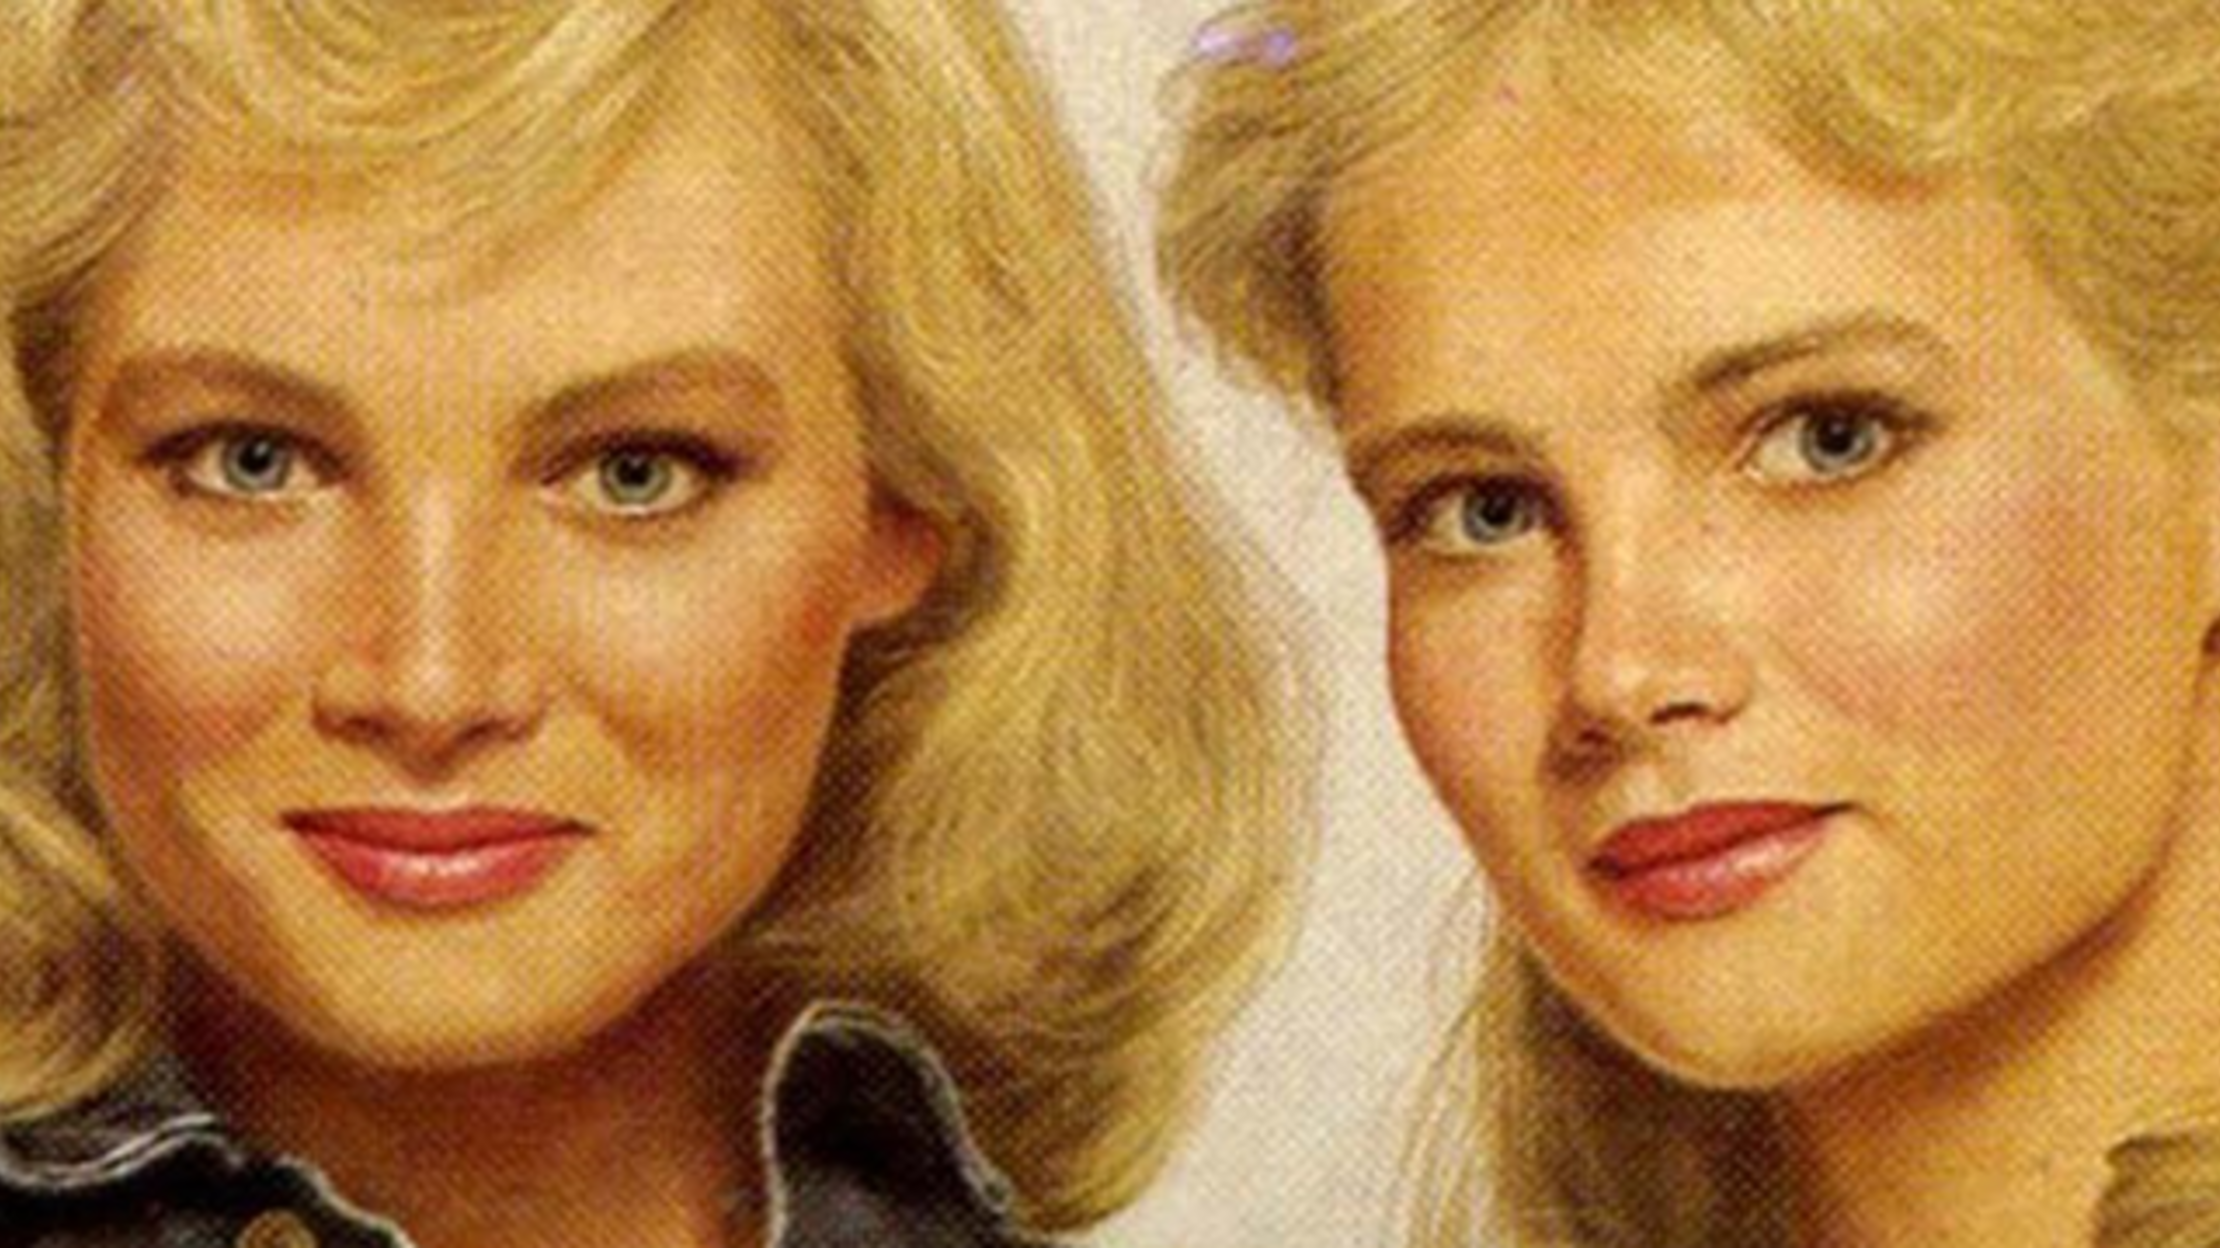 12 of the Sweet Valley High Books' Most Ridiculous Plotlines